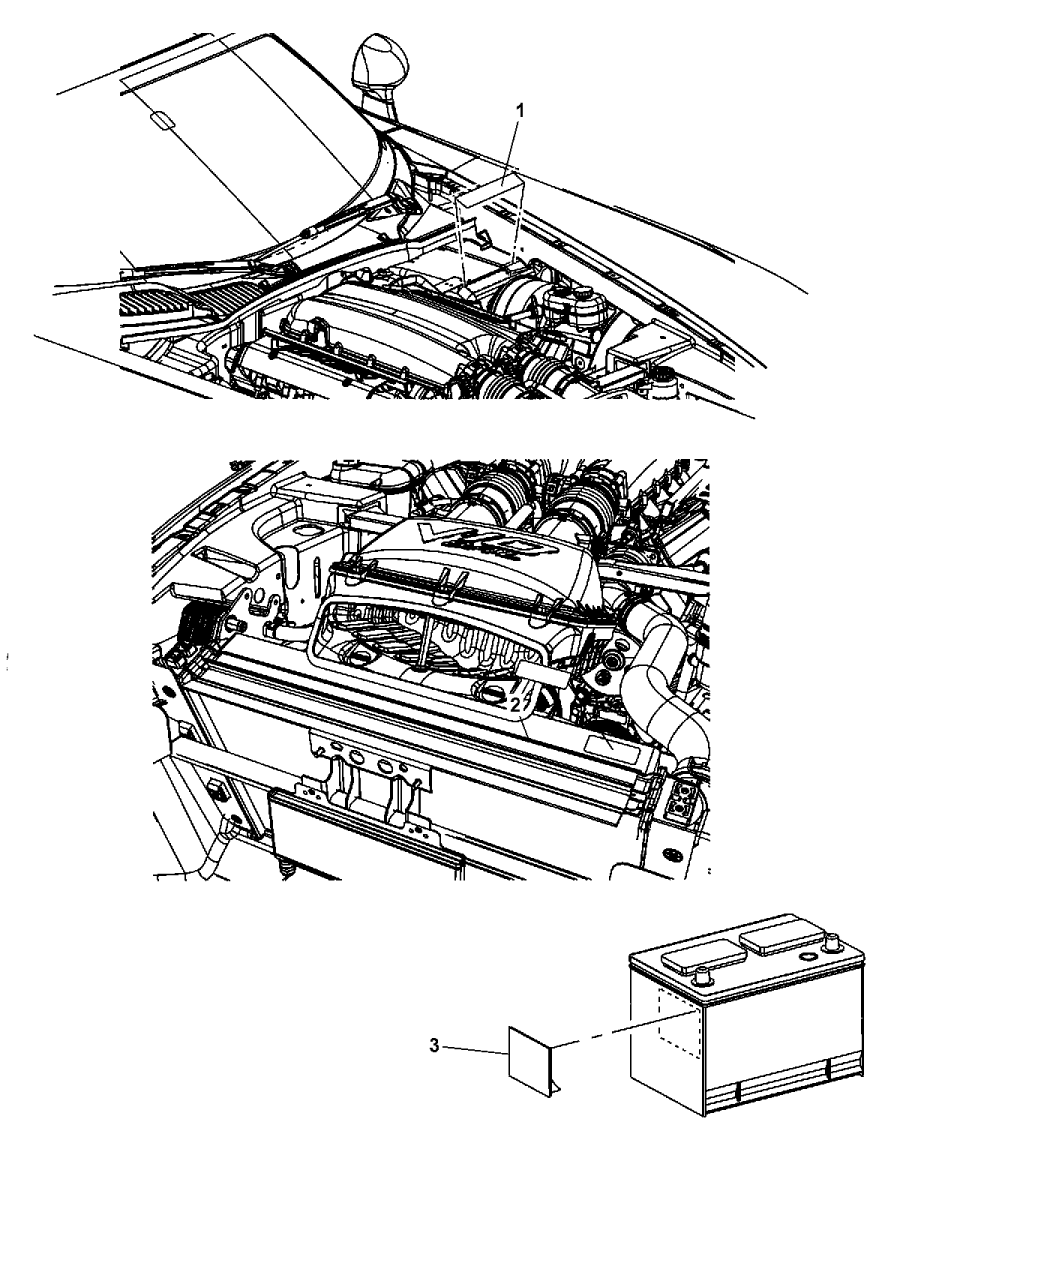 68160950AA - Genuine Dodge LABEL-AIR CONDITIONING SYSTEM